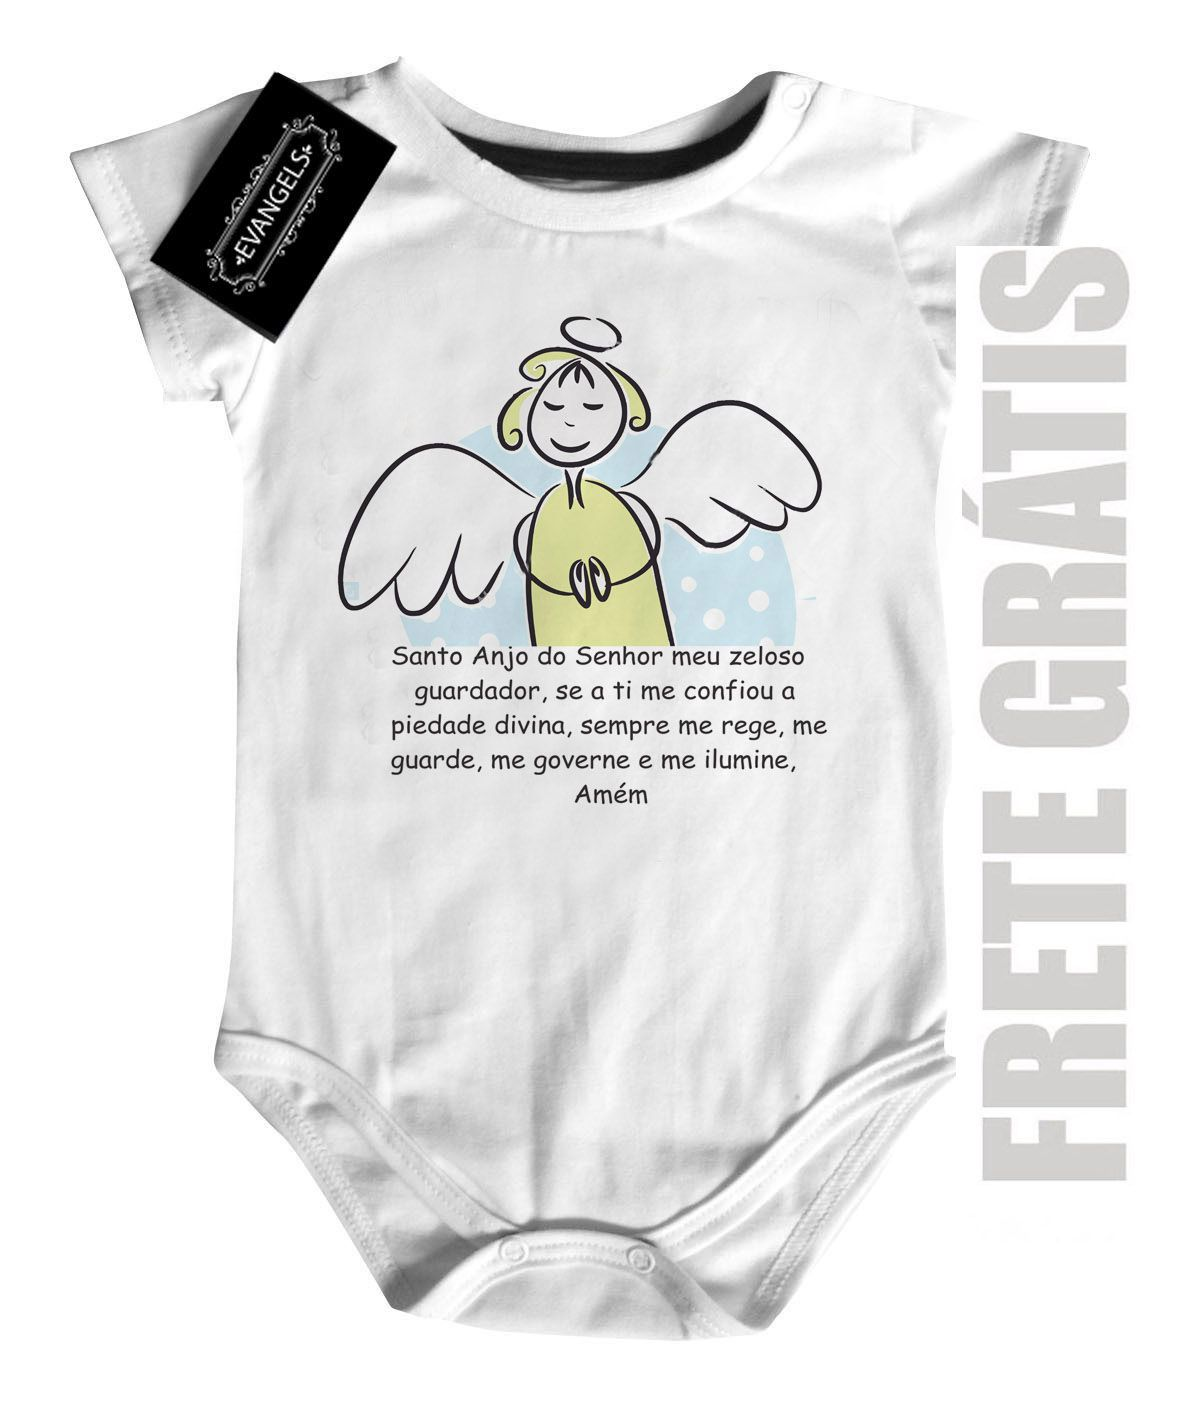 Body Baby  Católico Santo Anjo - white  - Baby Monster - Body Bebe